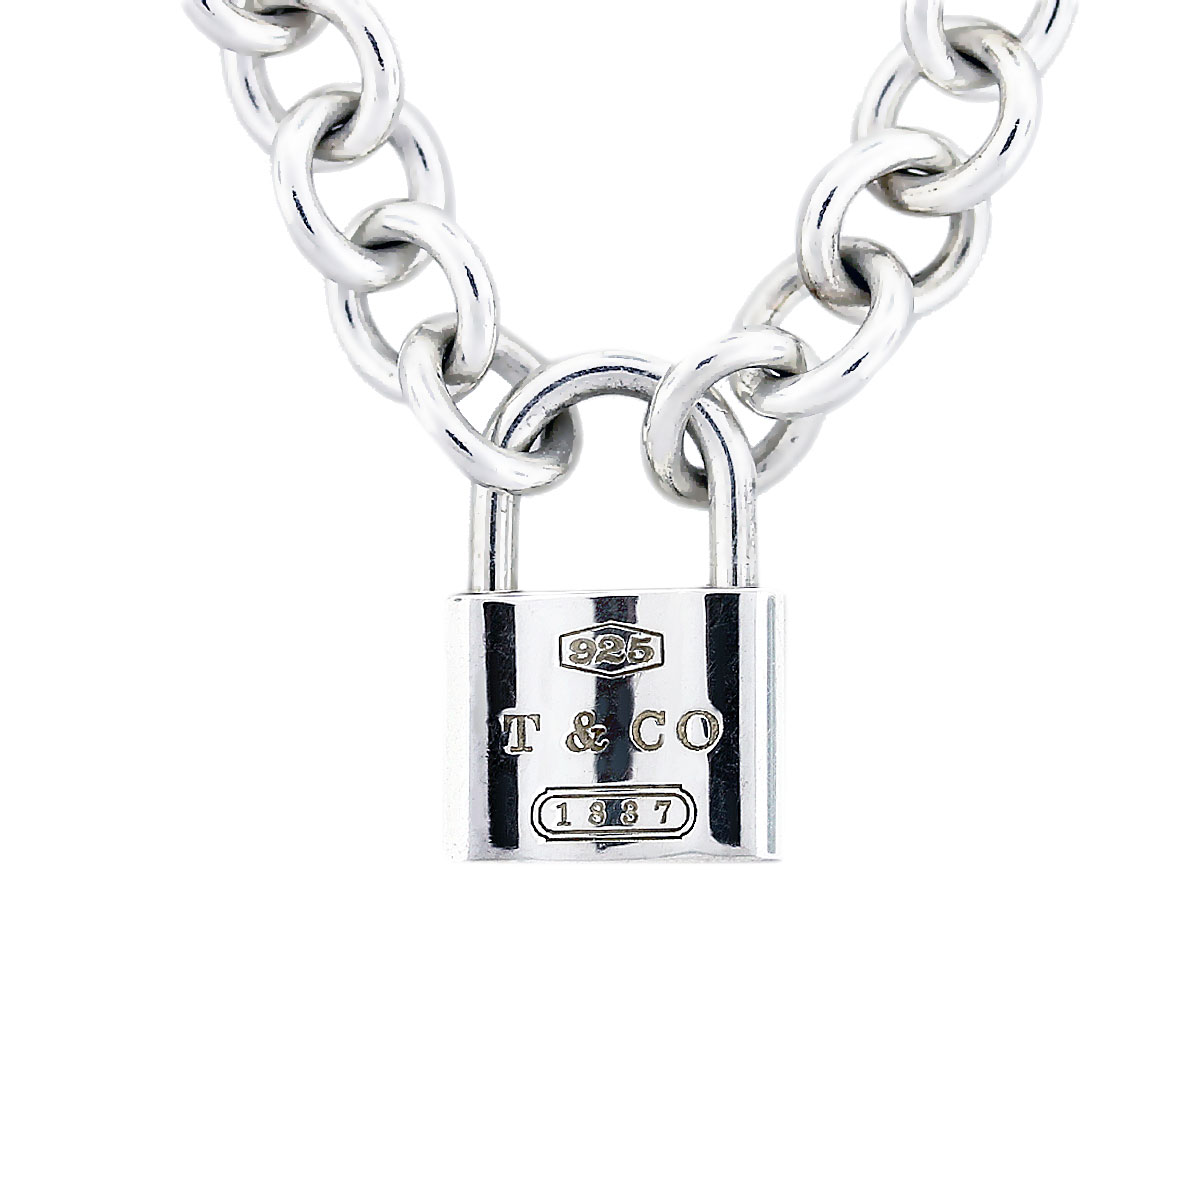 Tiffany Amp Co Sterling Silver 1837 Lock Necklace